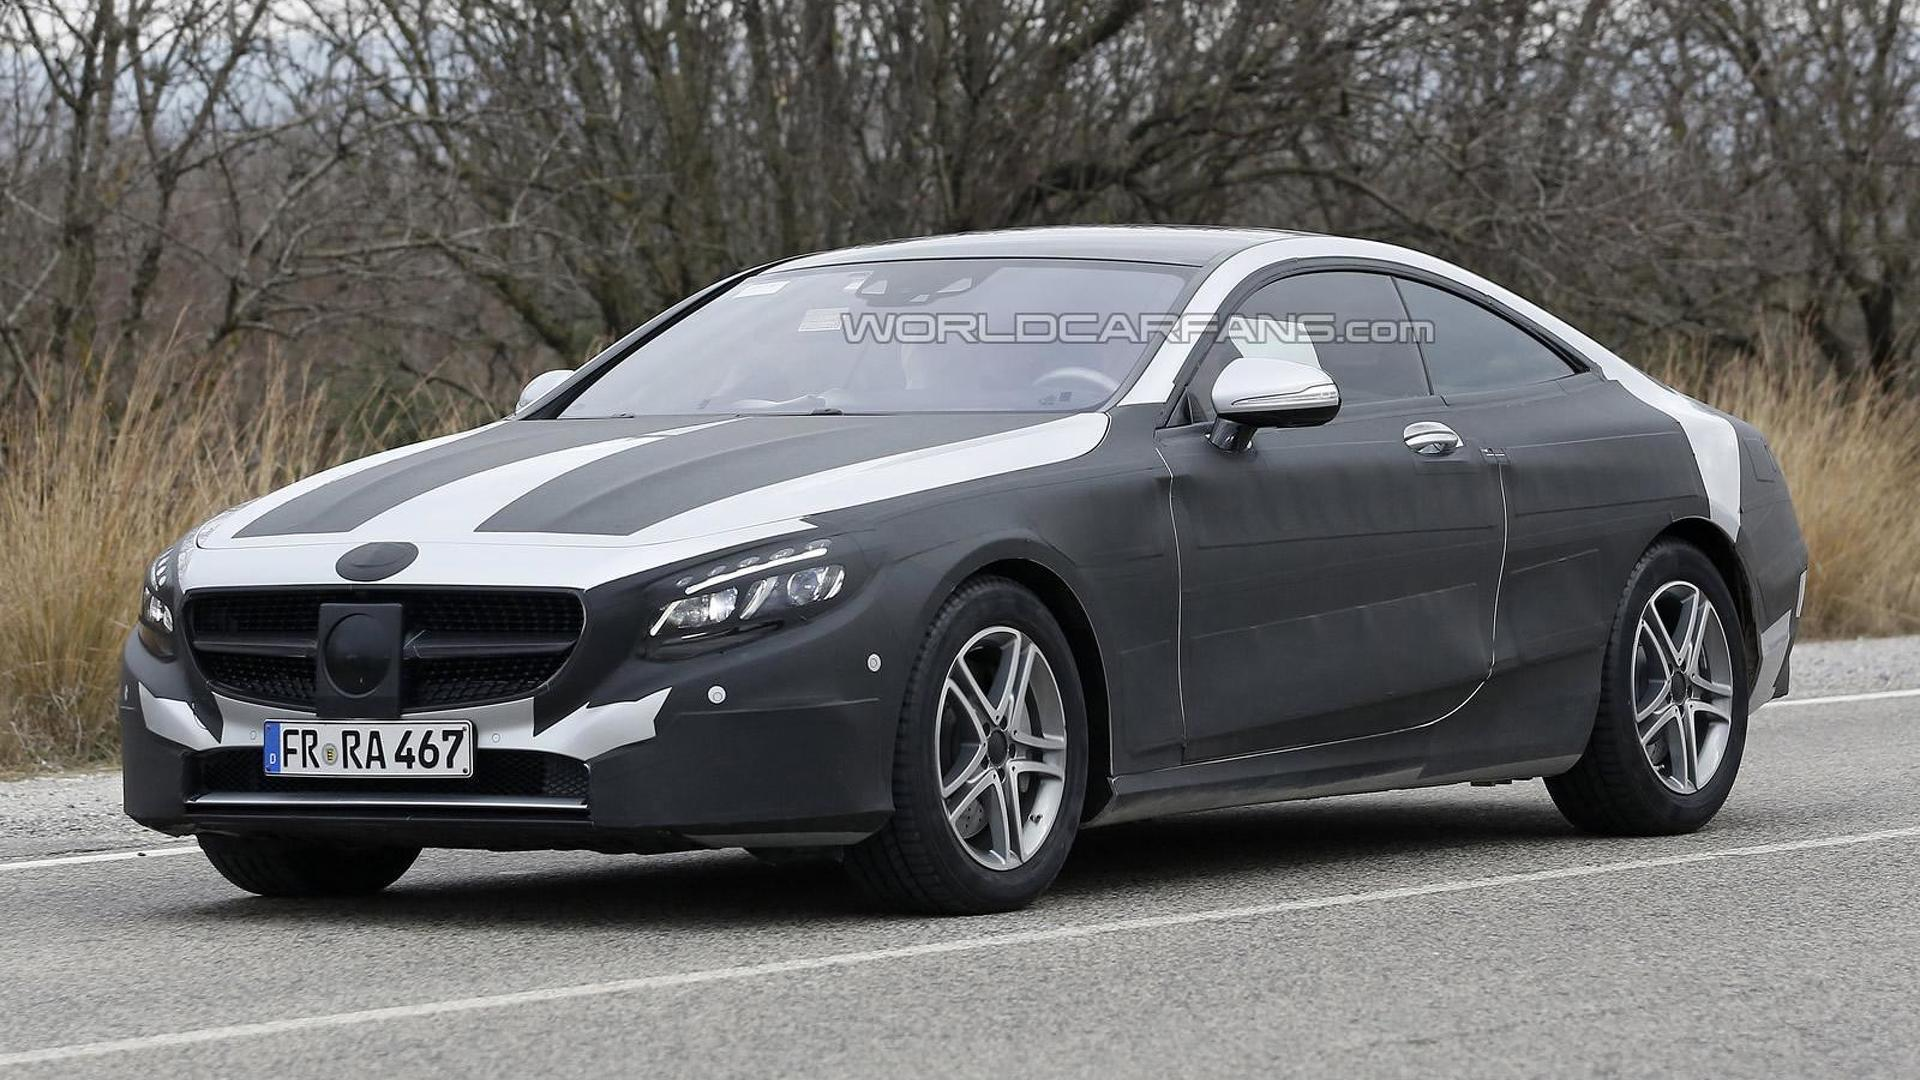 2014 Mercedes-Benz S-Class Coupe spied in four different locations in Europe